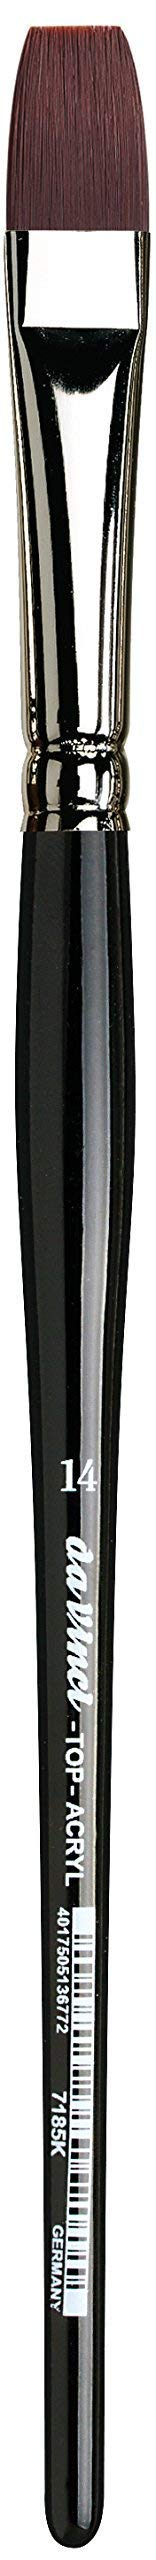 da Vinci Oil & Acrylic Series 7185K Top Acryl Paint Brush, Flat Red/Brown Synthetic with Short Handle, Size 14